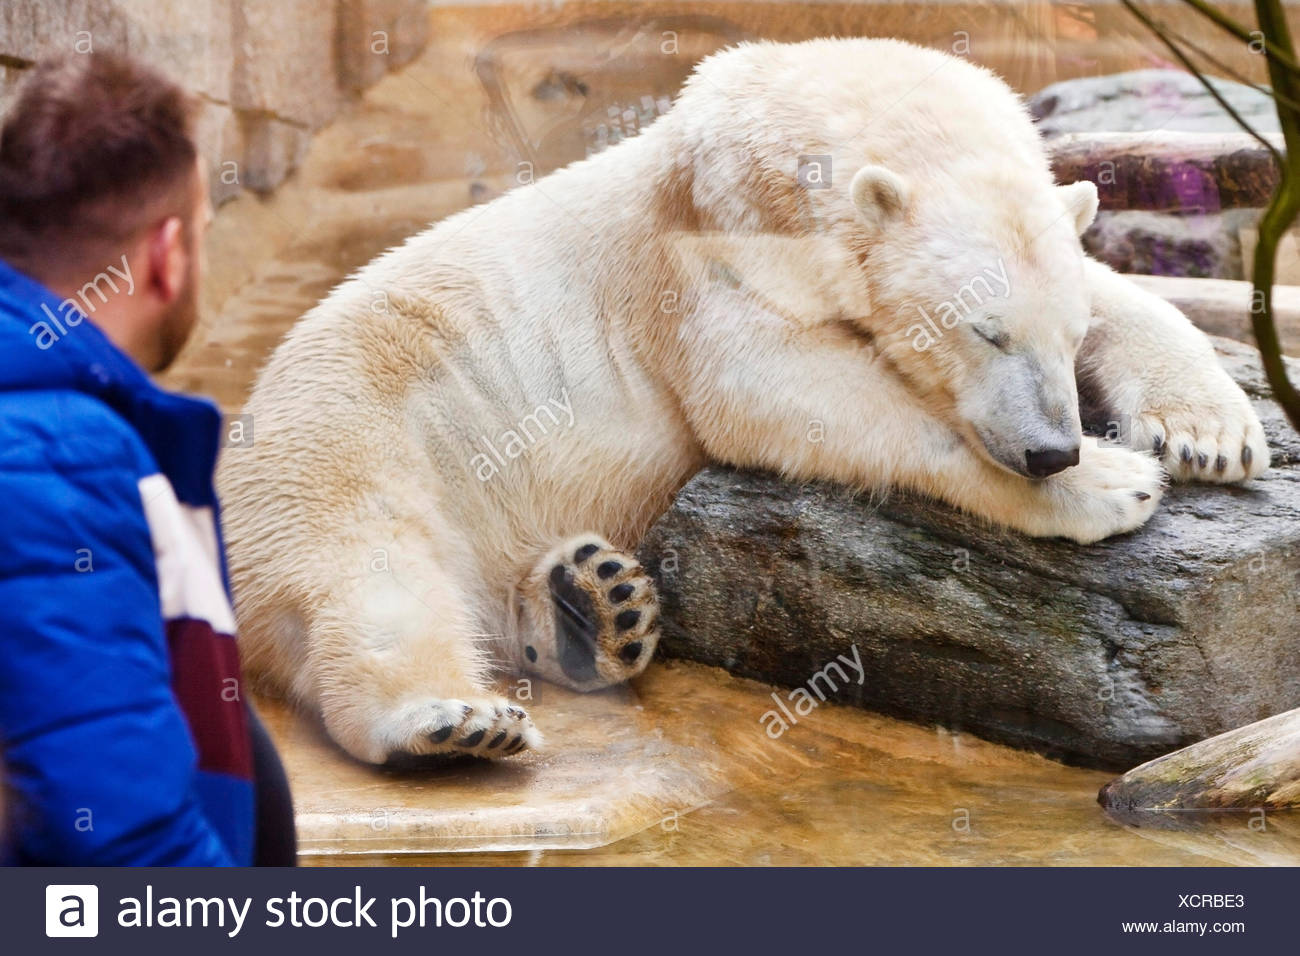 polar bear (Ursus maritimus), man watches a sleeping polar bear at the Wuppertal Zoo, Germany - Stock Image